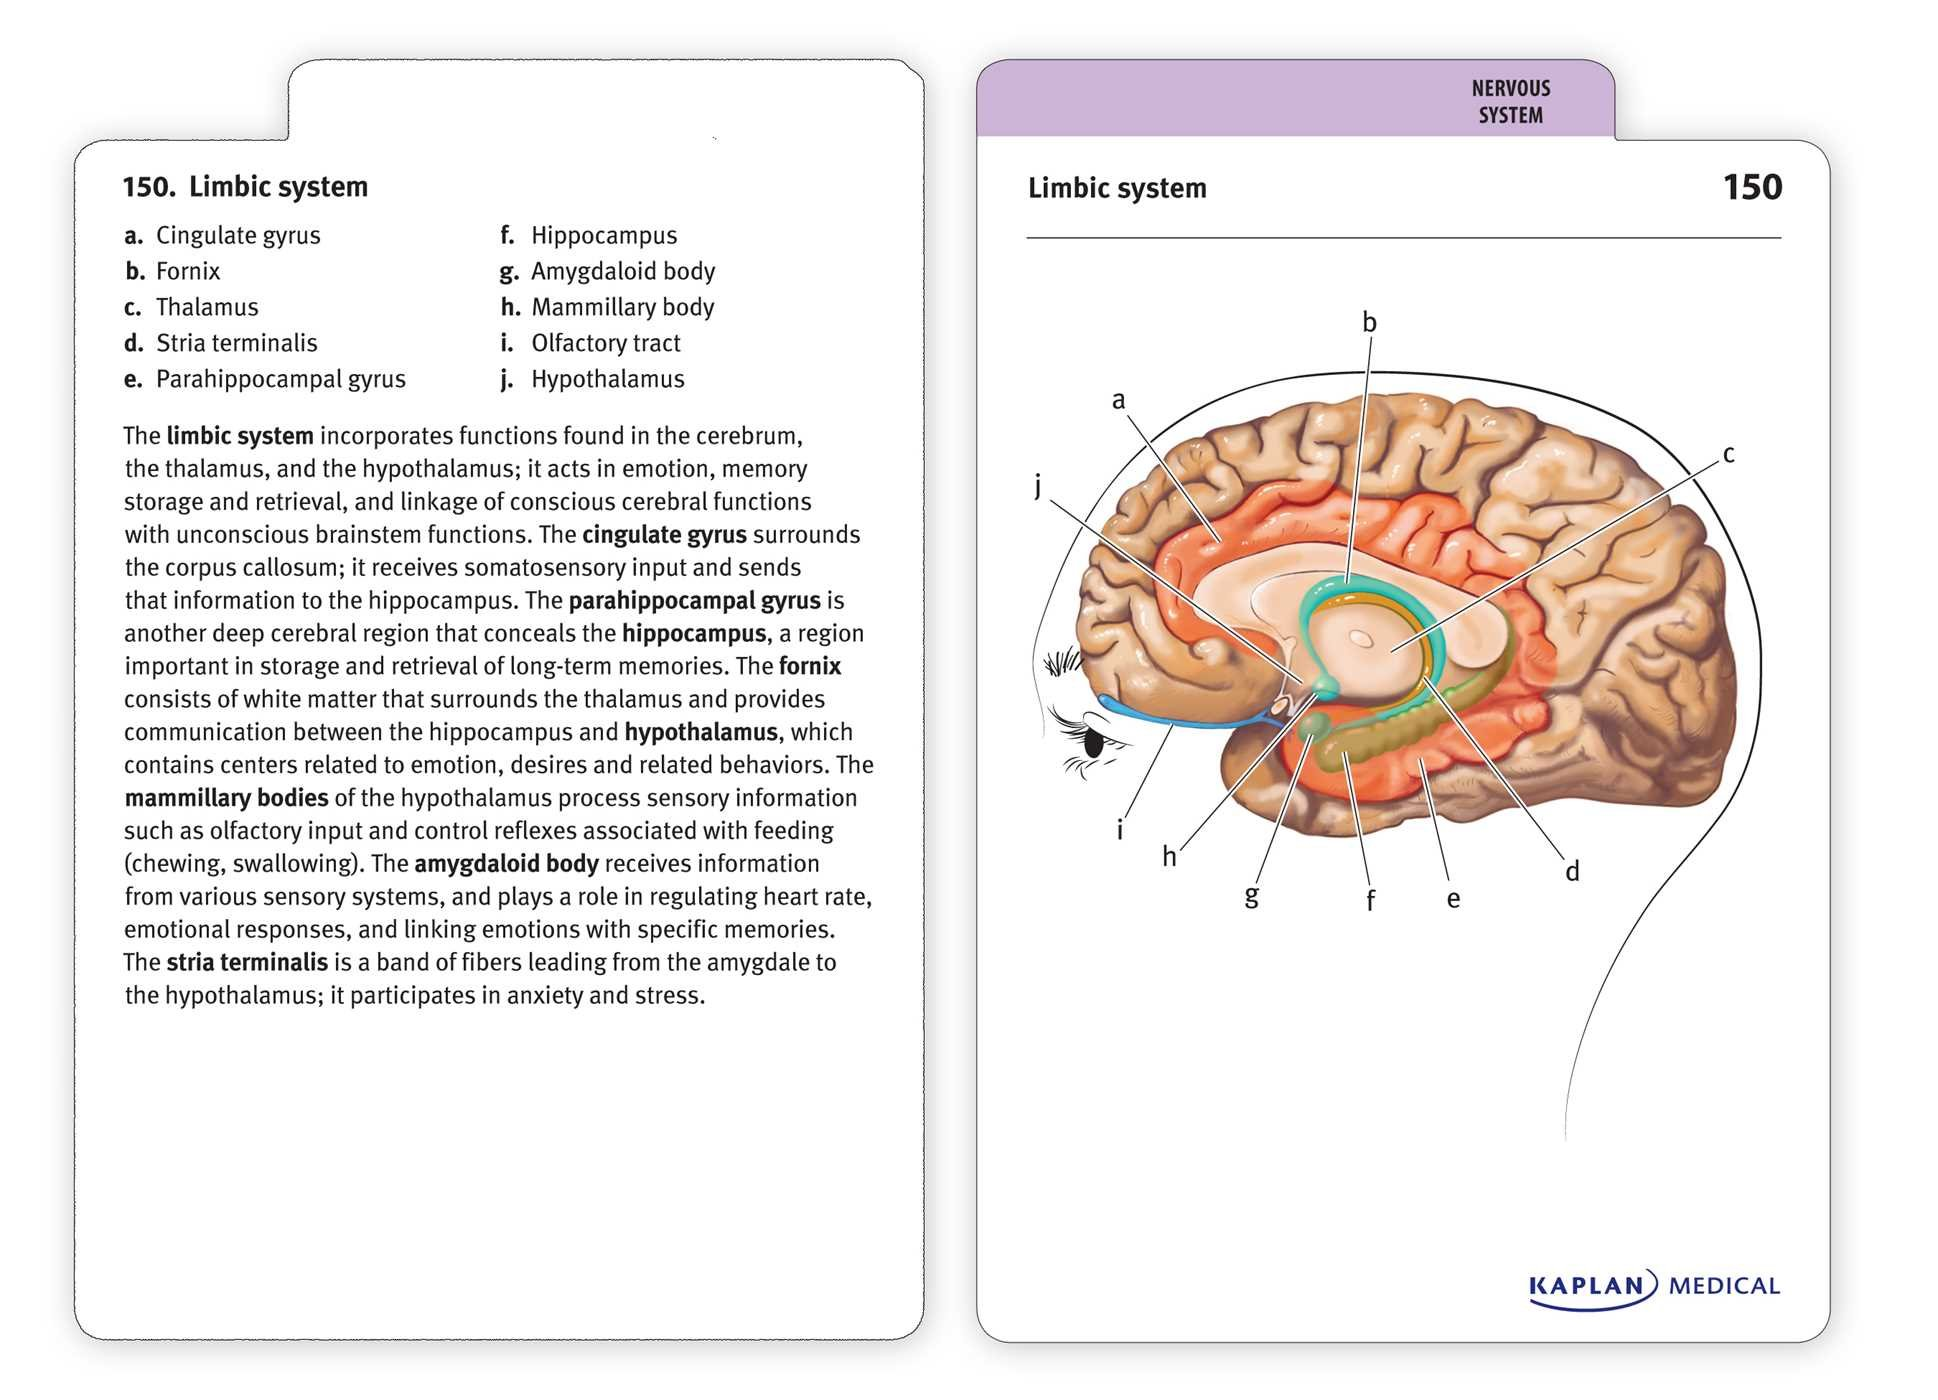 Anatomy flashcards amazon joanne tillotson sonia reichert anatomy flashcards amazon joanne tillotson sonia reichert stephanie mccann 8601415641493 books ccuart Images